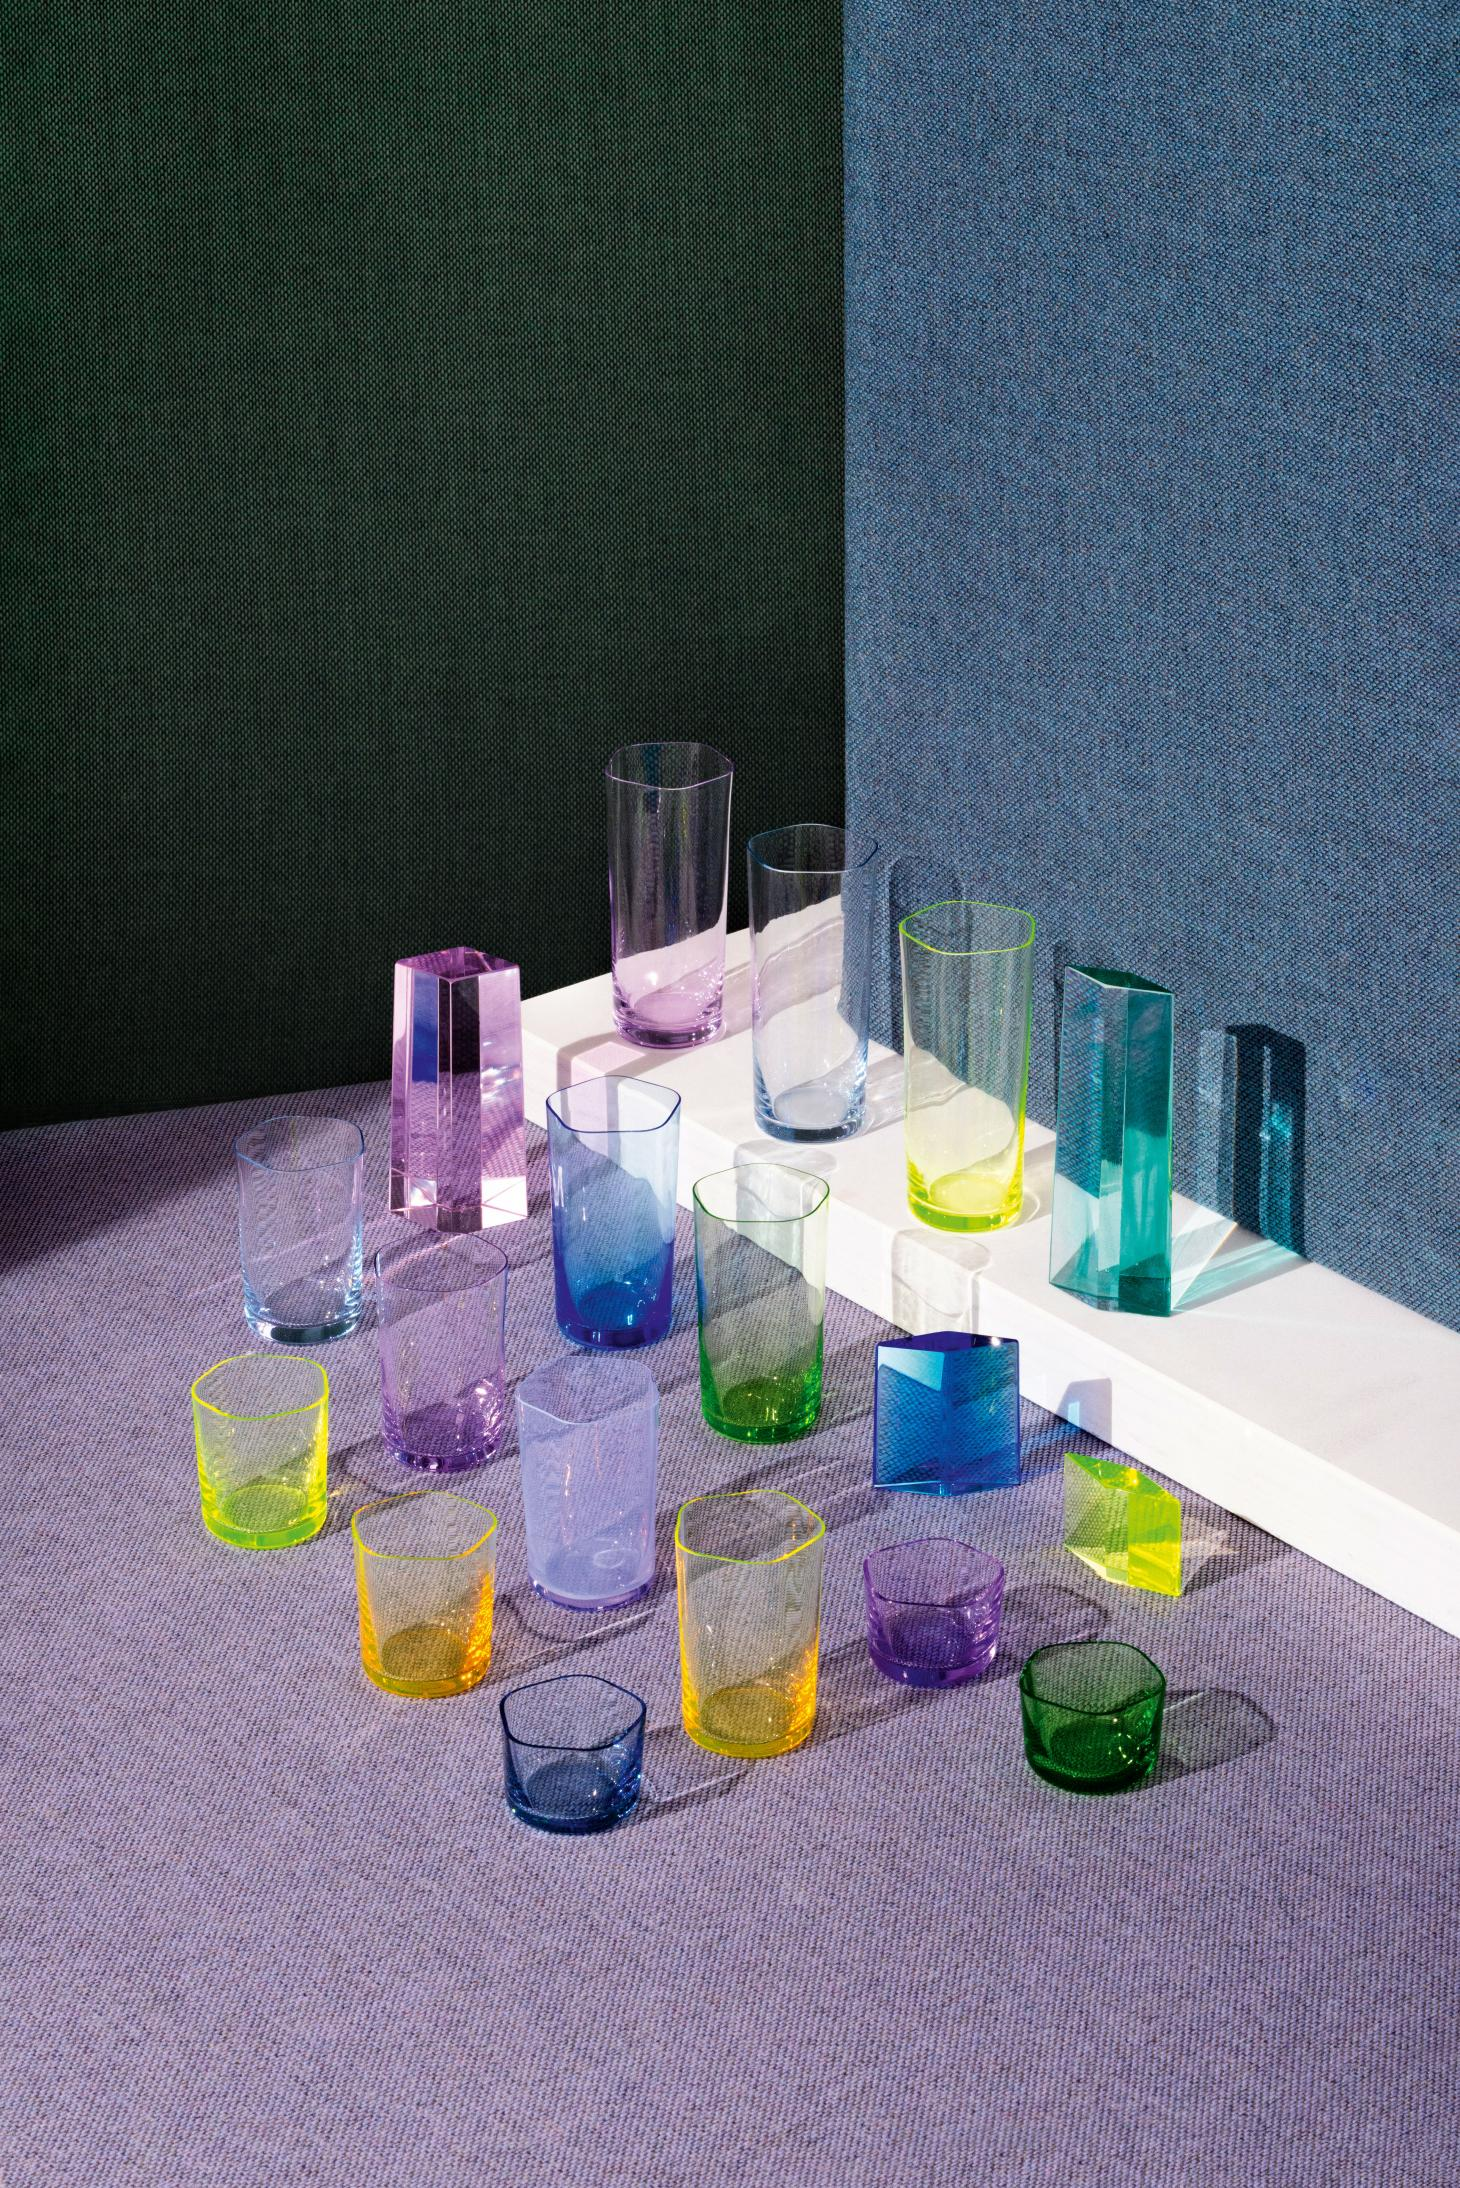 Several thin glasses of different sizes, colours include yellow, lilac, green, blue and pink